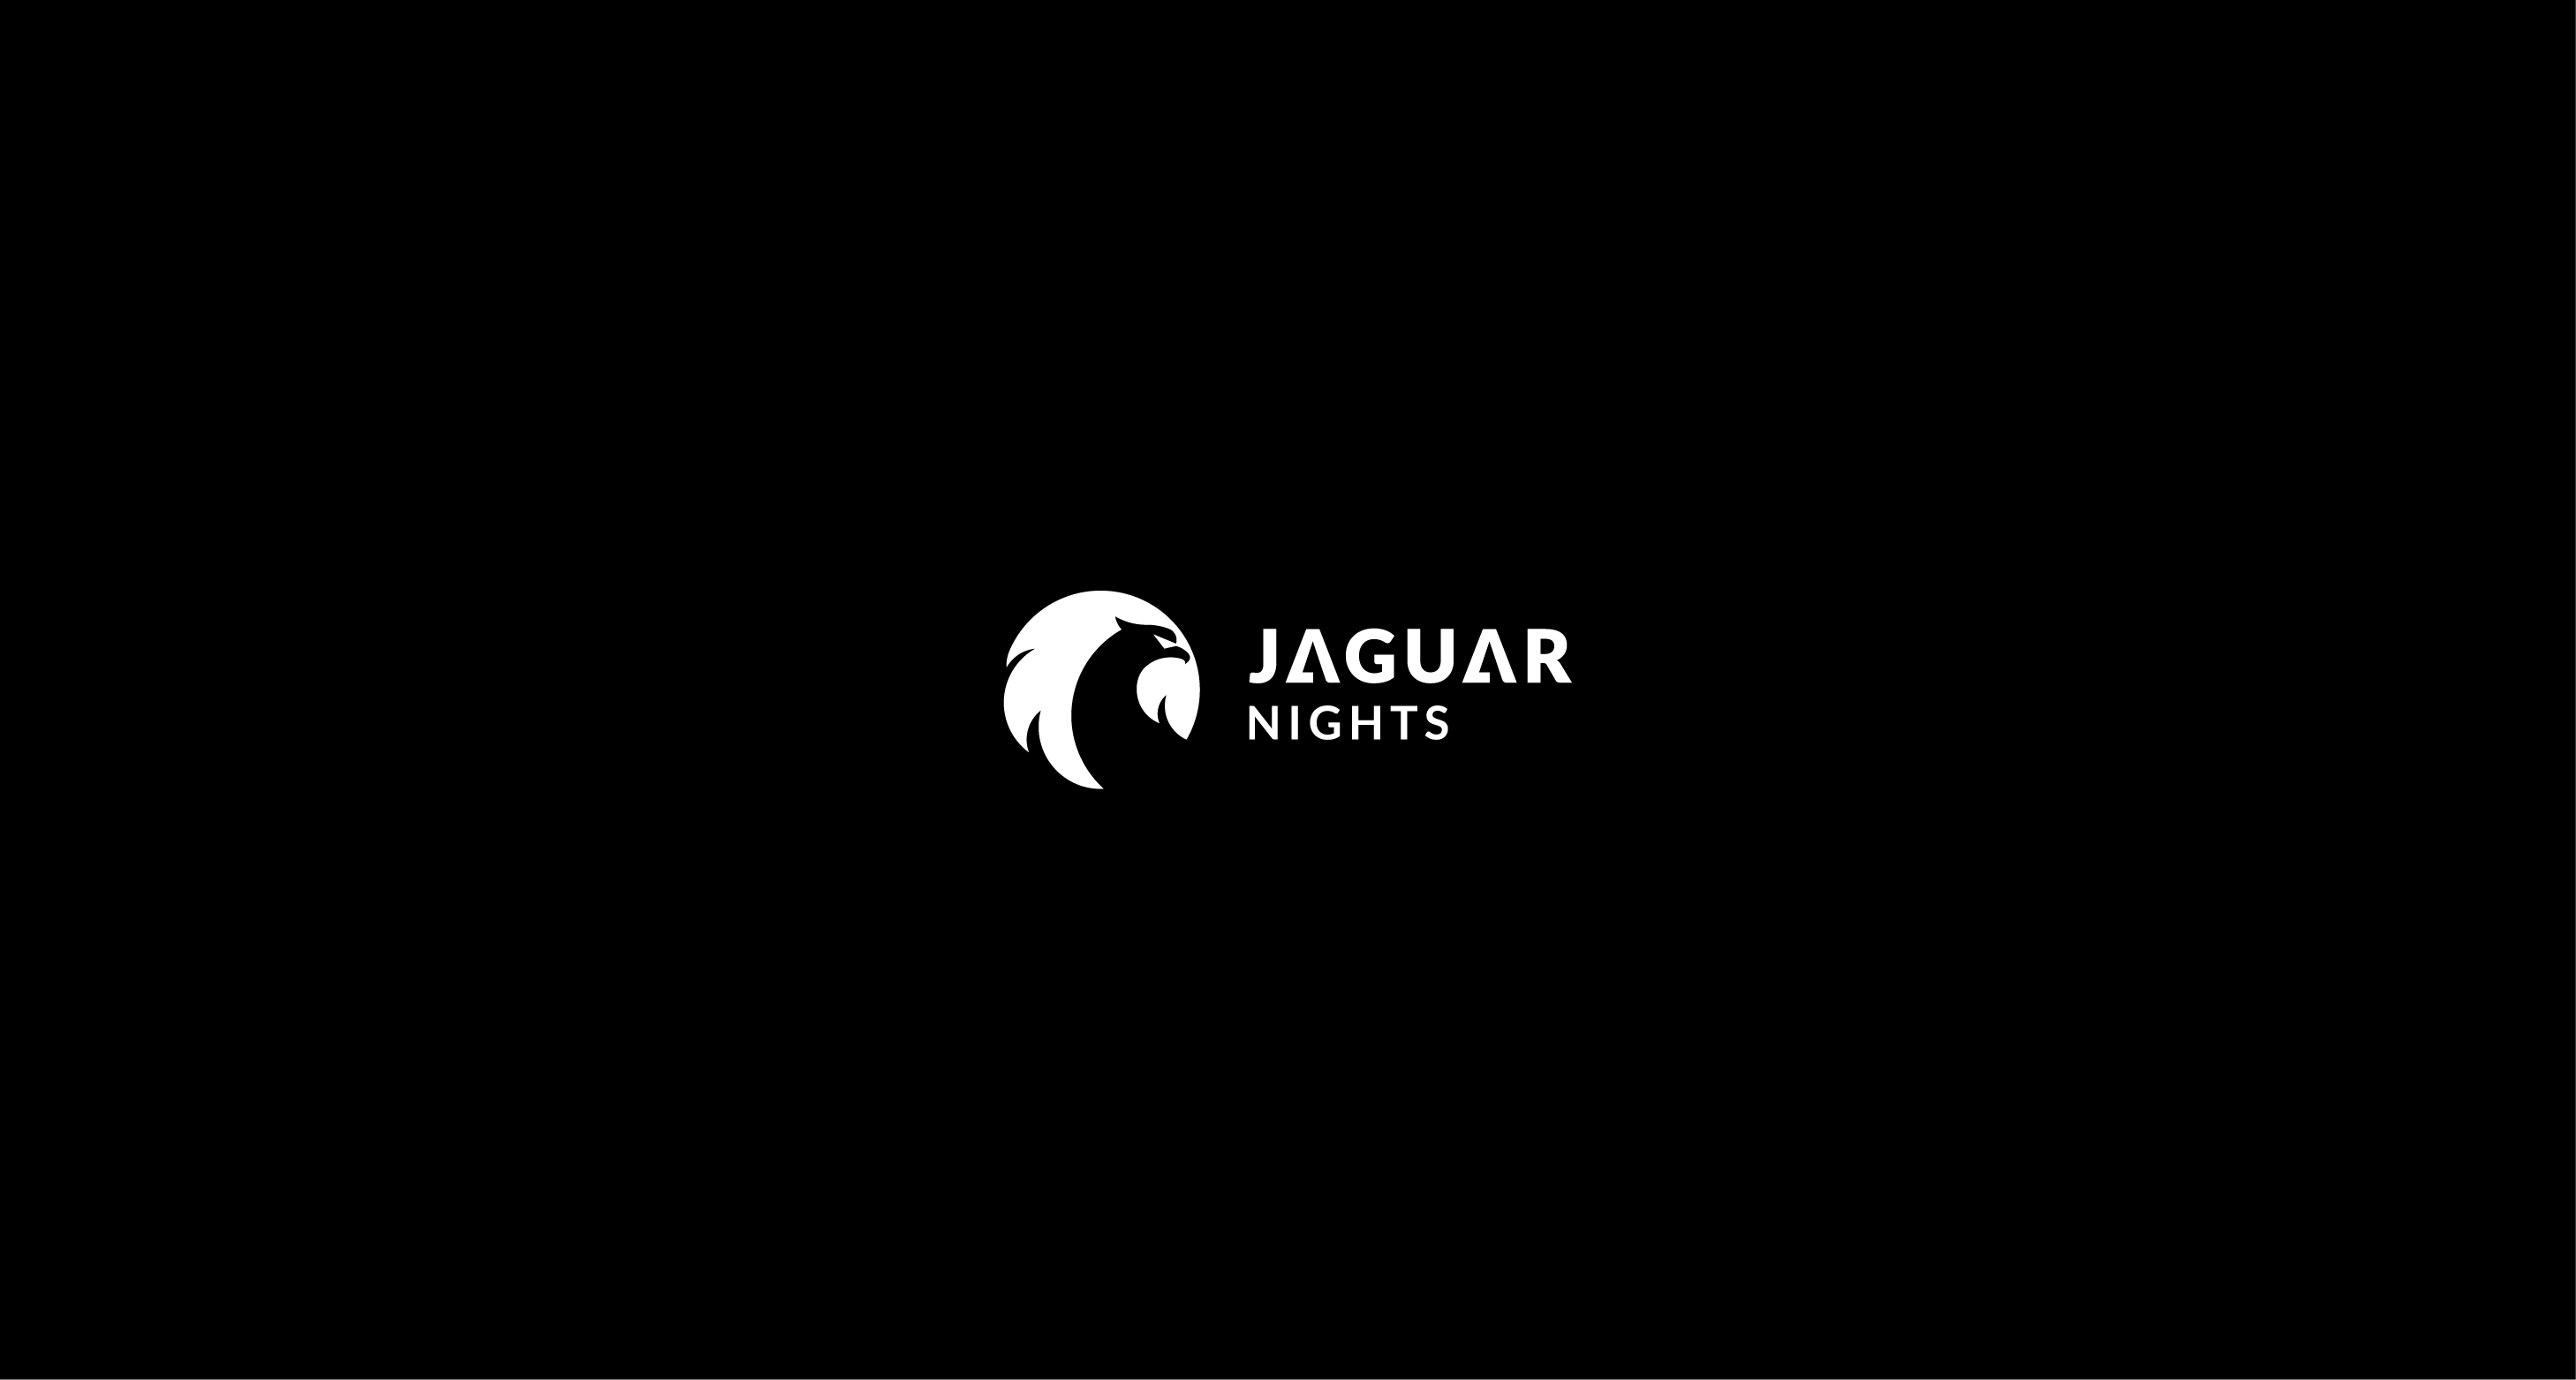 Jaguar Nights Logo - Eagle logo